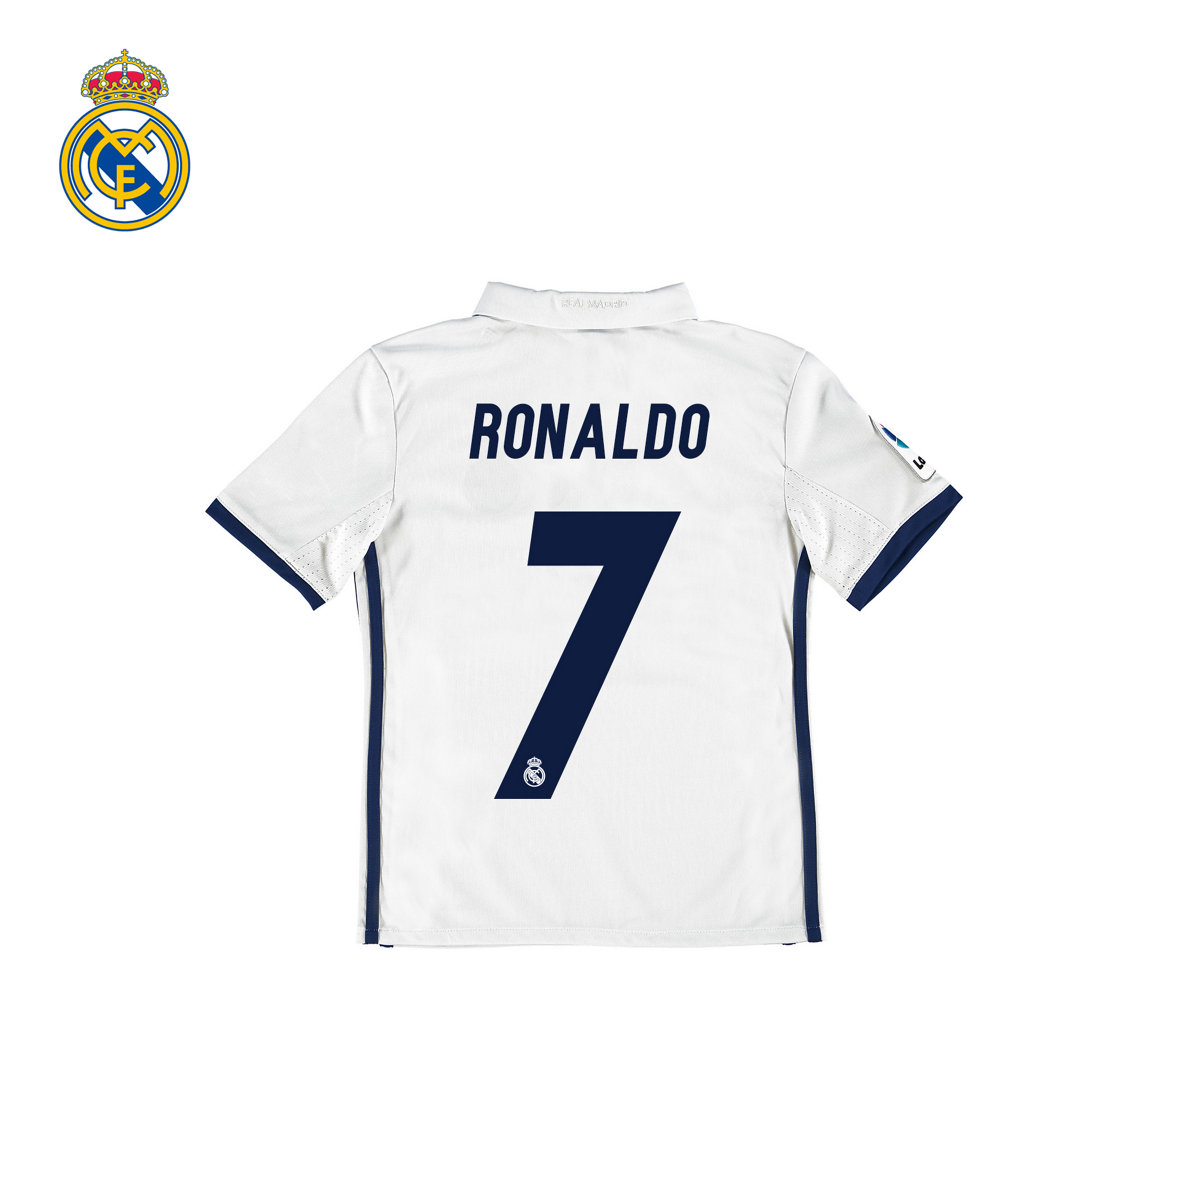 buy online 1833b 24eeb China Ronaldo Kids Jersey, China Ronaldo Kids Jersey ...